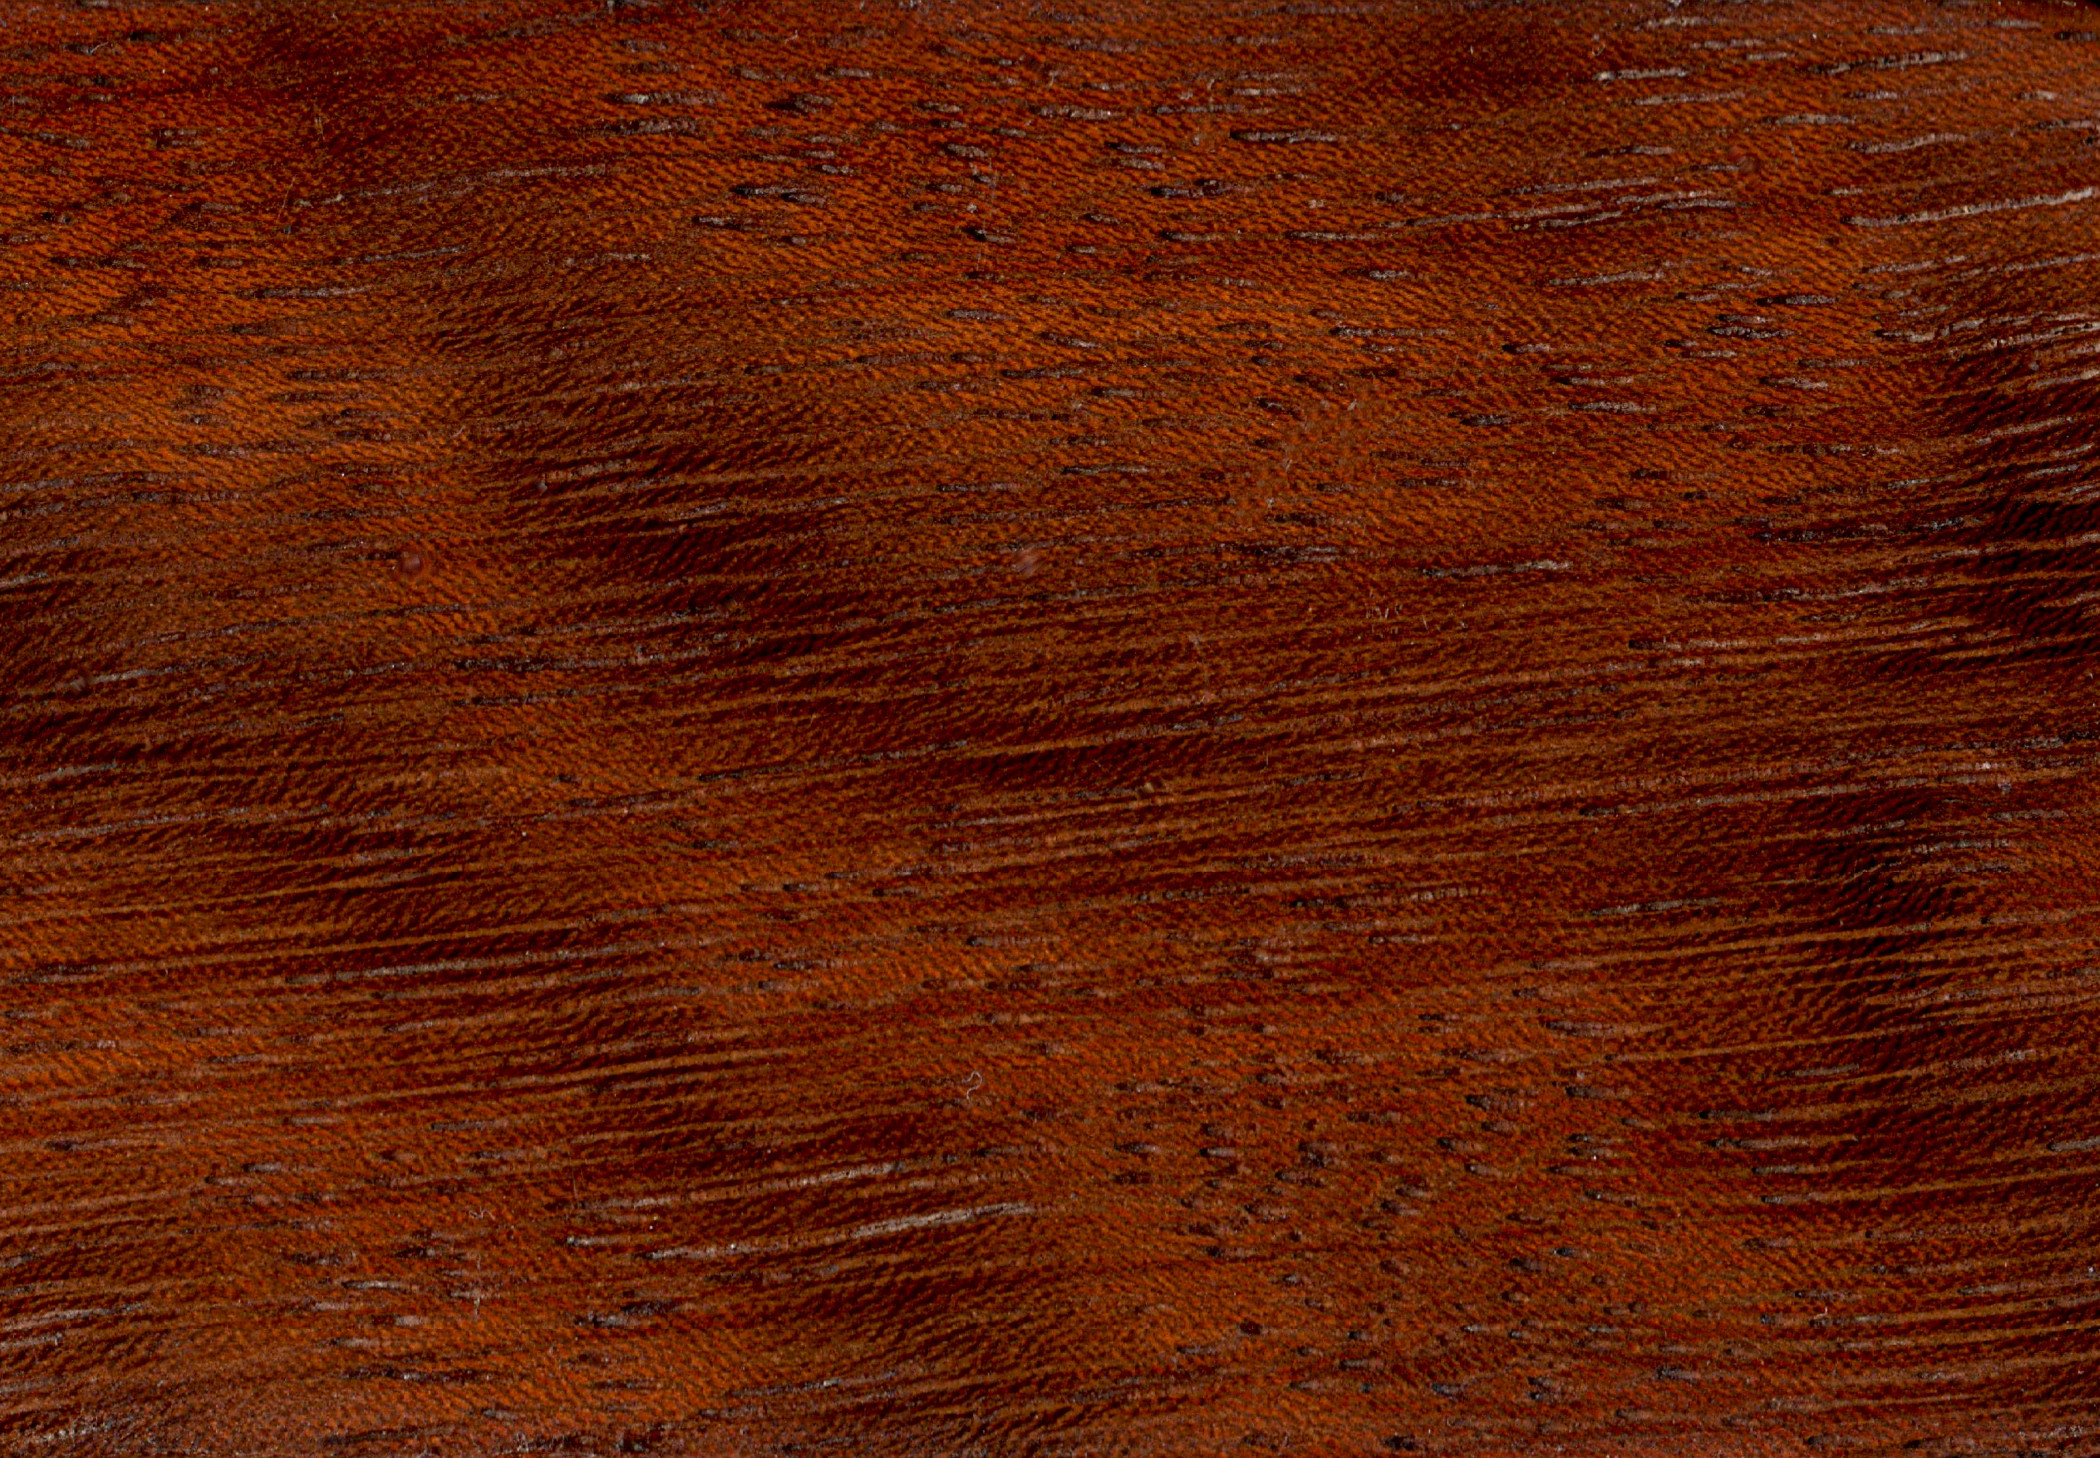 What does mahogany wood look like